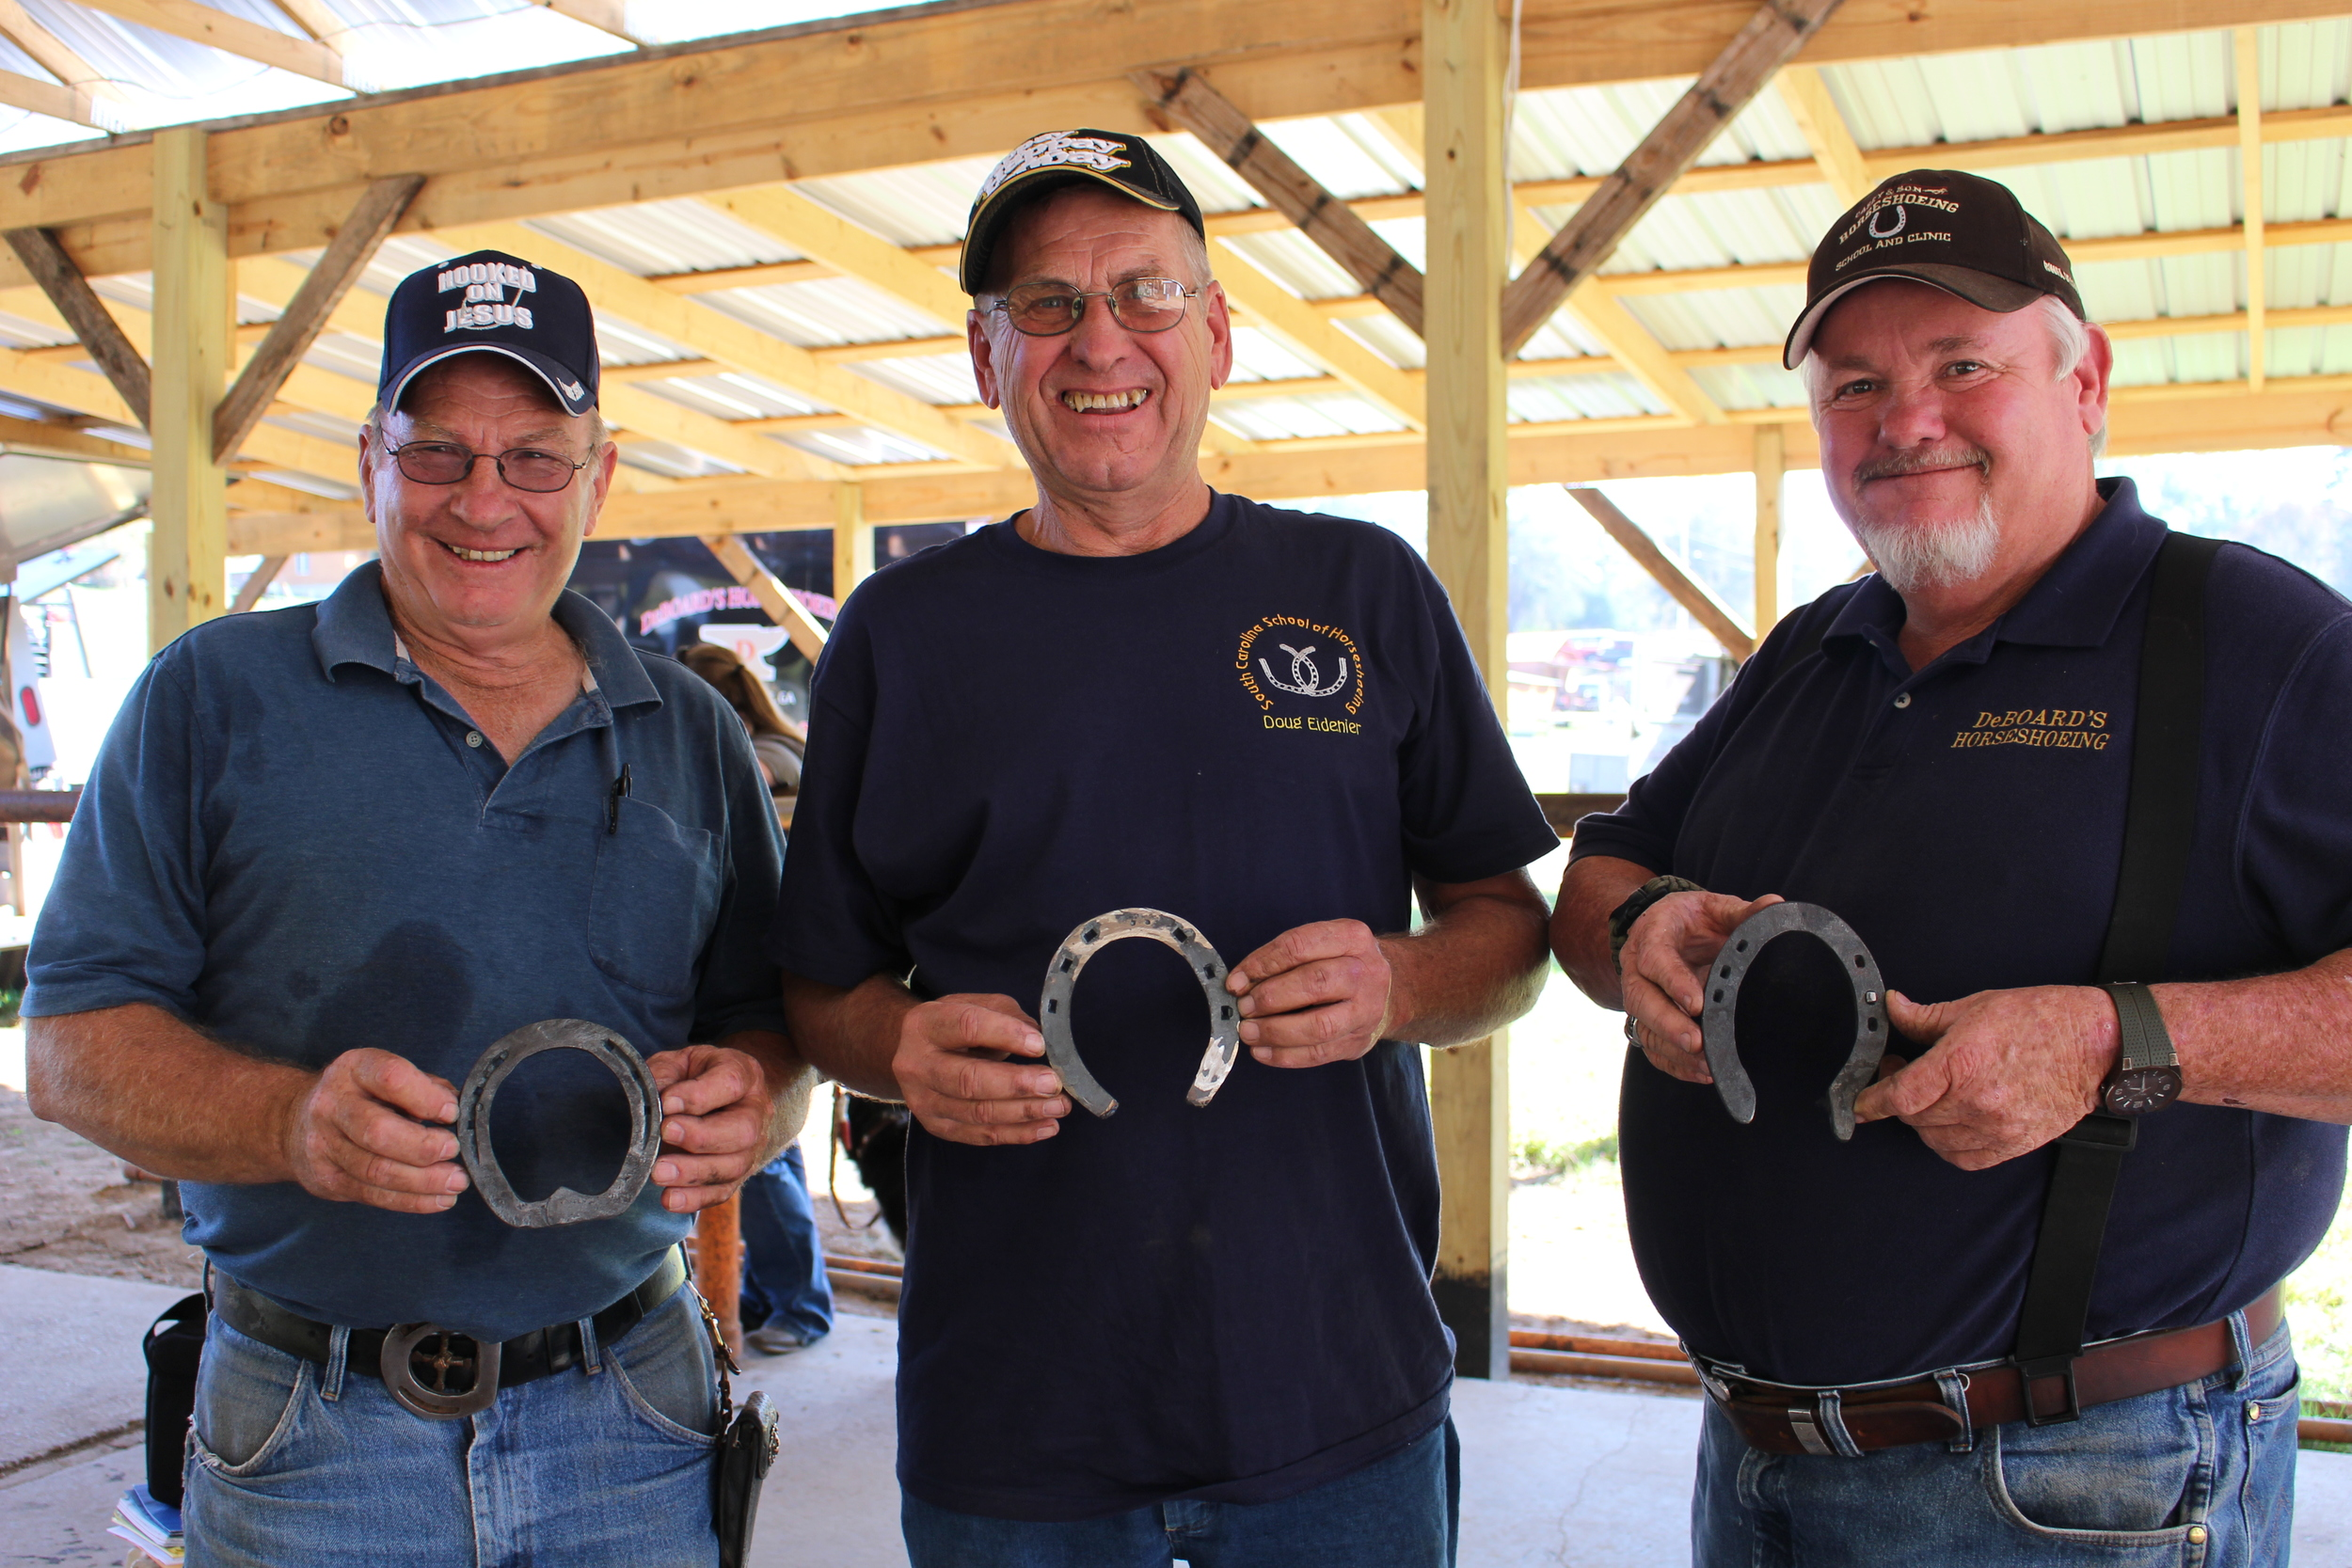 Professional Farriers, Dan Marcum, Doug Eidiner, Ronney Deboard, each with 30+ years of experience to share  2014.